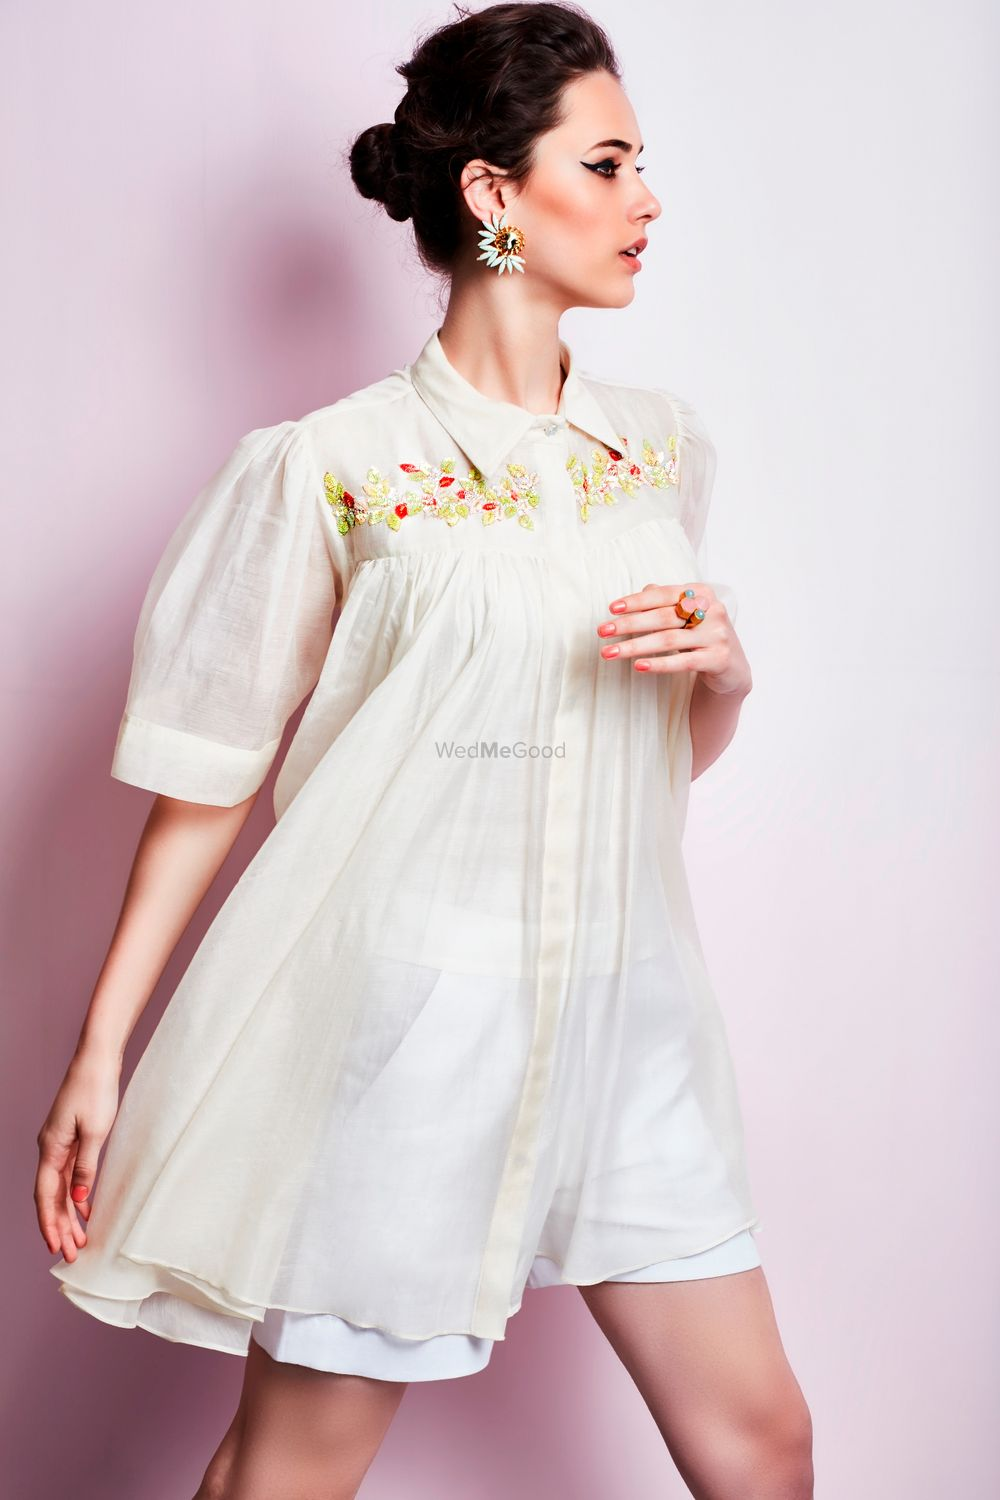 Photo From Sue Mue's SS16 Pret - By Sue Mue